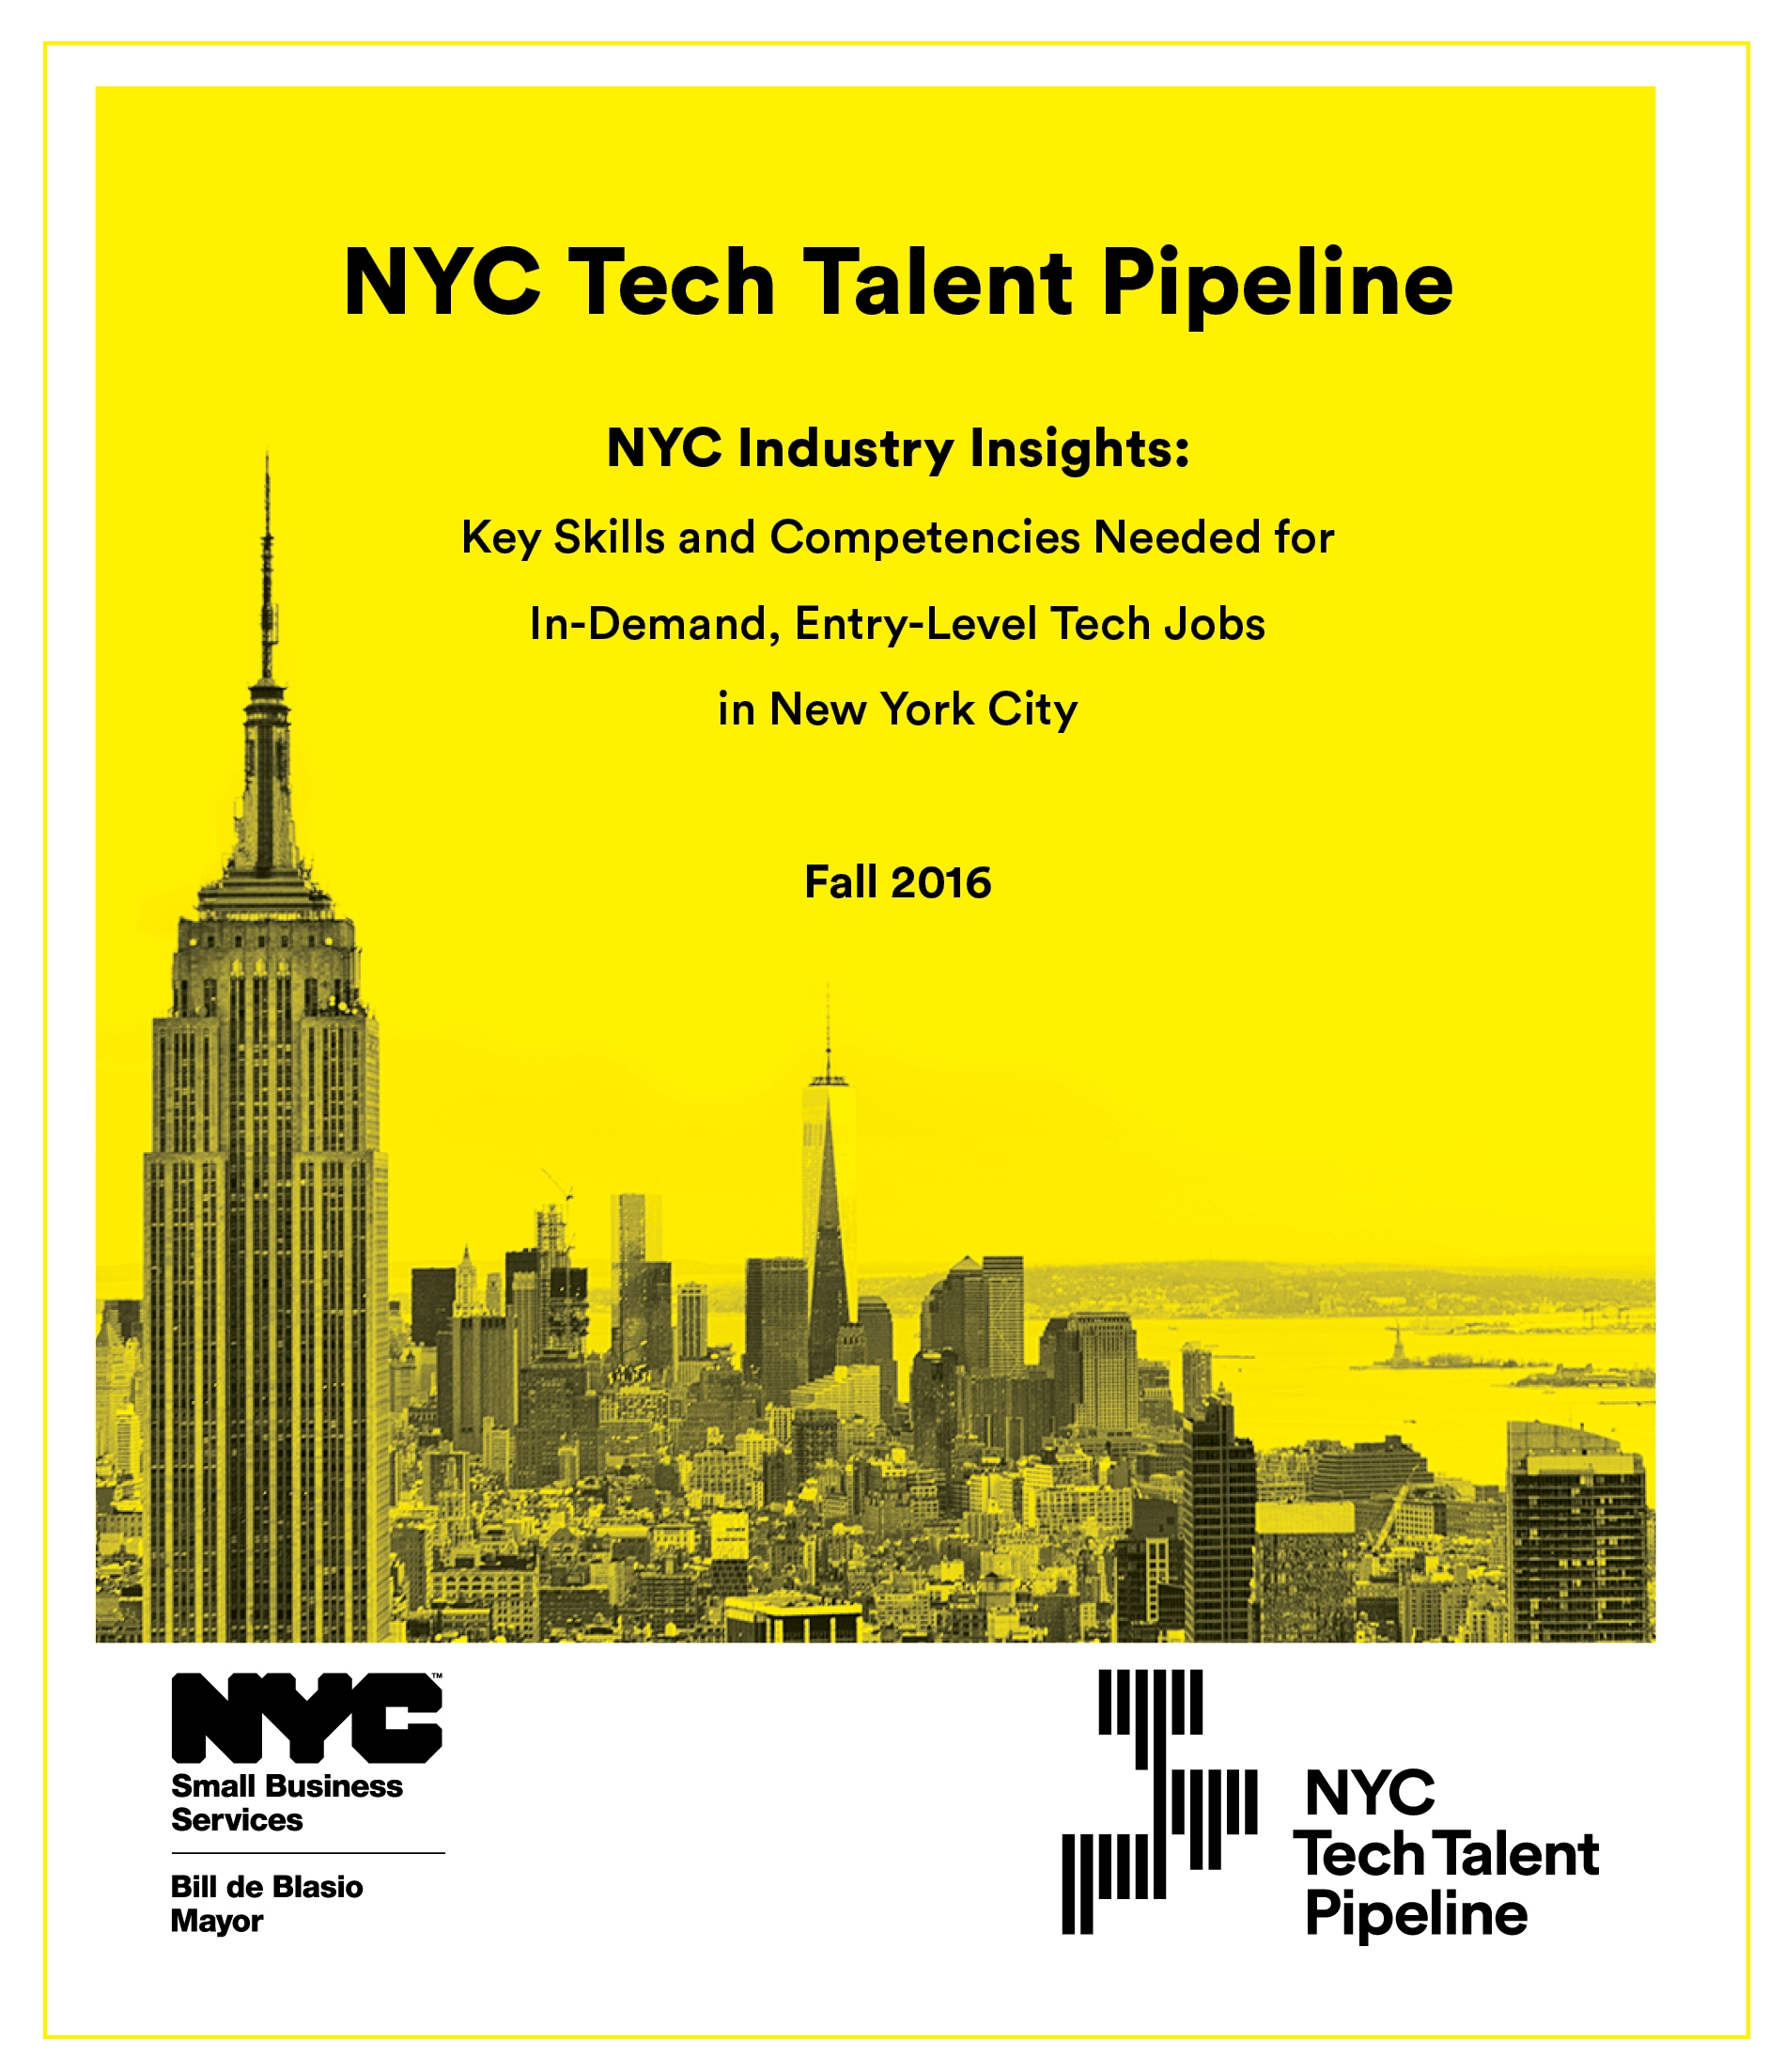 ACKNOWLEDGEMENTS   The NYC Tech Talent Pipeline gratefully acknowledges the contributions of the many industry partners and advisors who made the creation of this resource possible, including the Tech Talent Pipeline Advisory Board.  We would also like to sincerely thank the following individuals for their additional insight, partnership, resources, and brainpower:    Maryam Ali, Max Sklar, Derek Brown, Marco de Masi, Ori Schnaps, Ben Sussman, Jon Chan, Leigh Shapiro, Karl Laraque, and Jessica Hills.